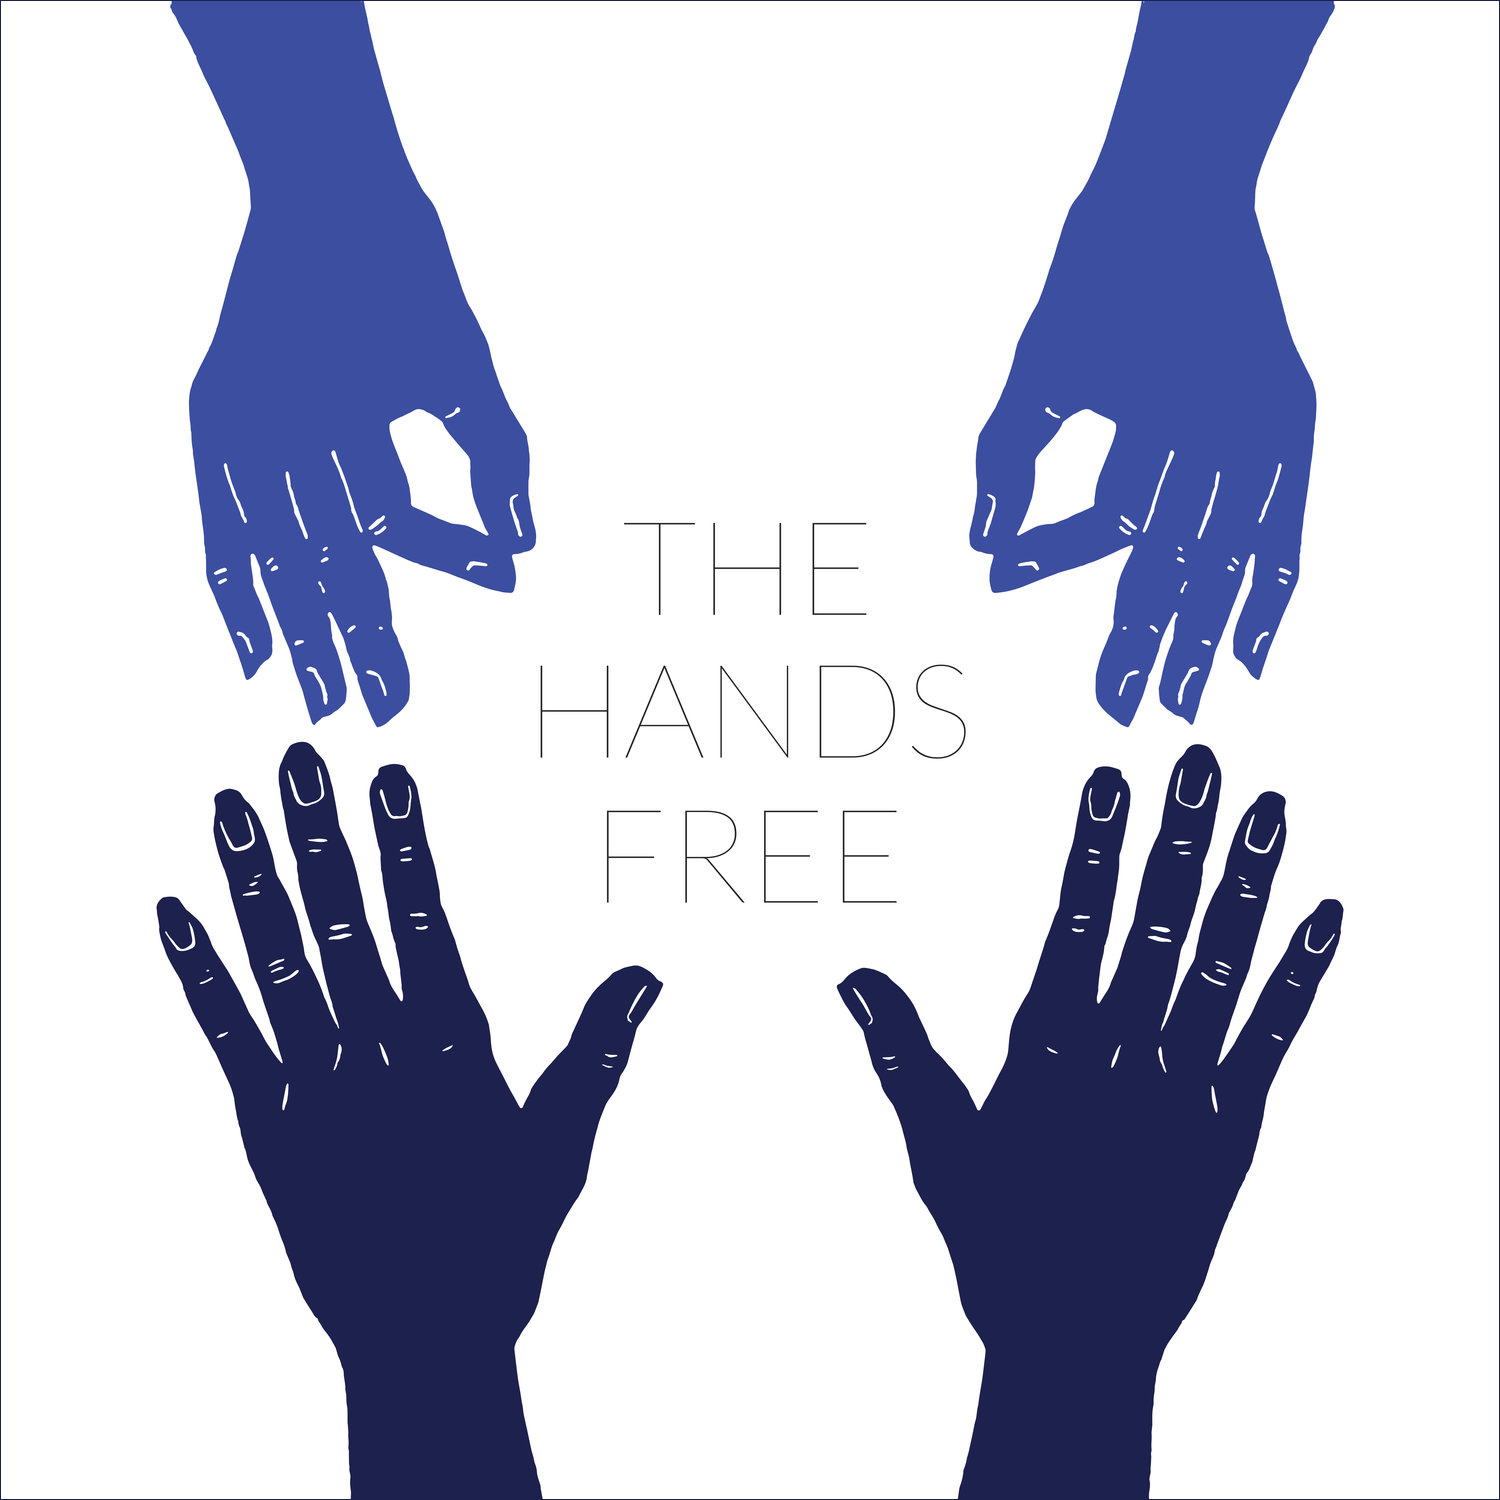 The Hands Free: THE HANDS FREE (2018) mix engineer